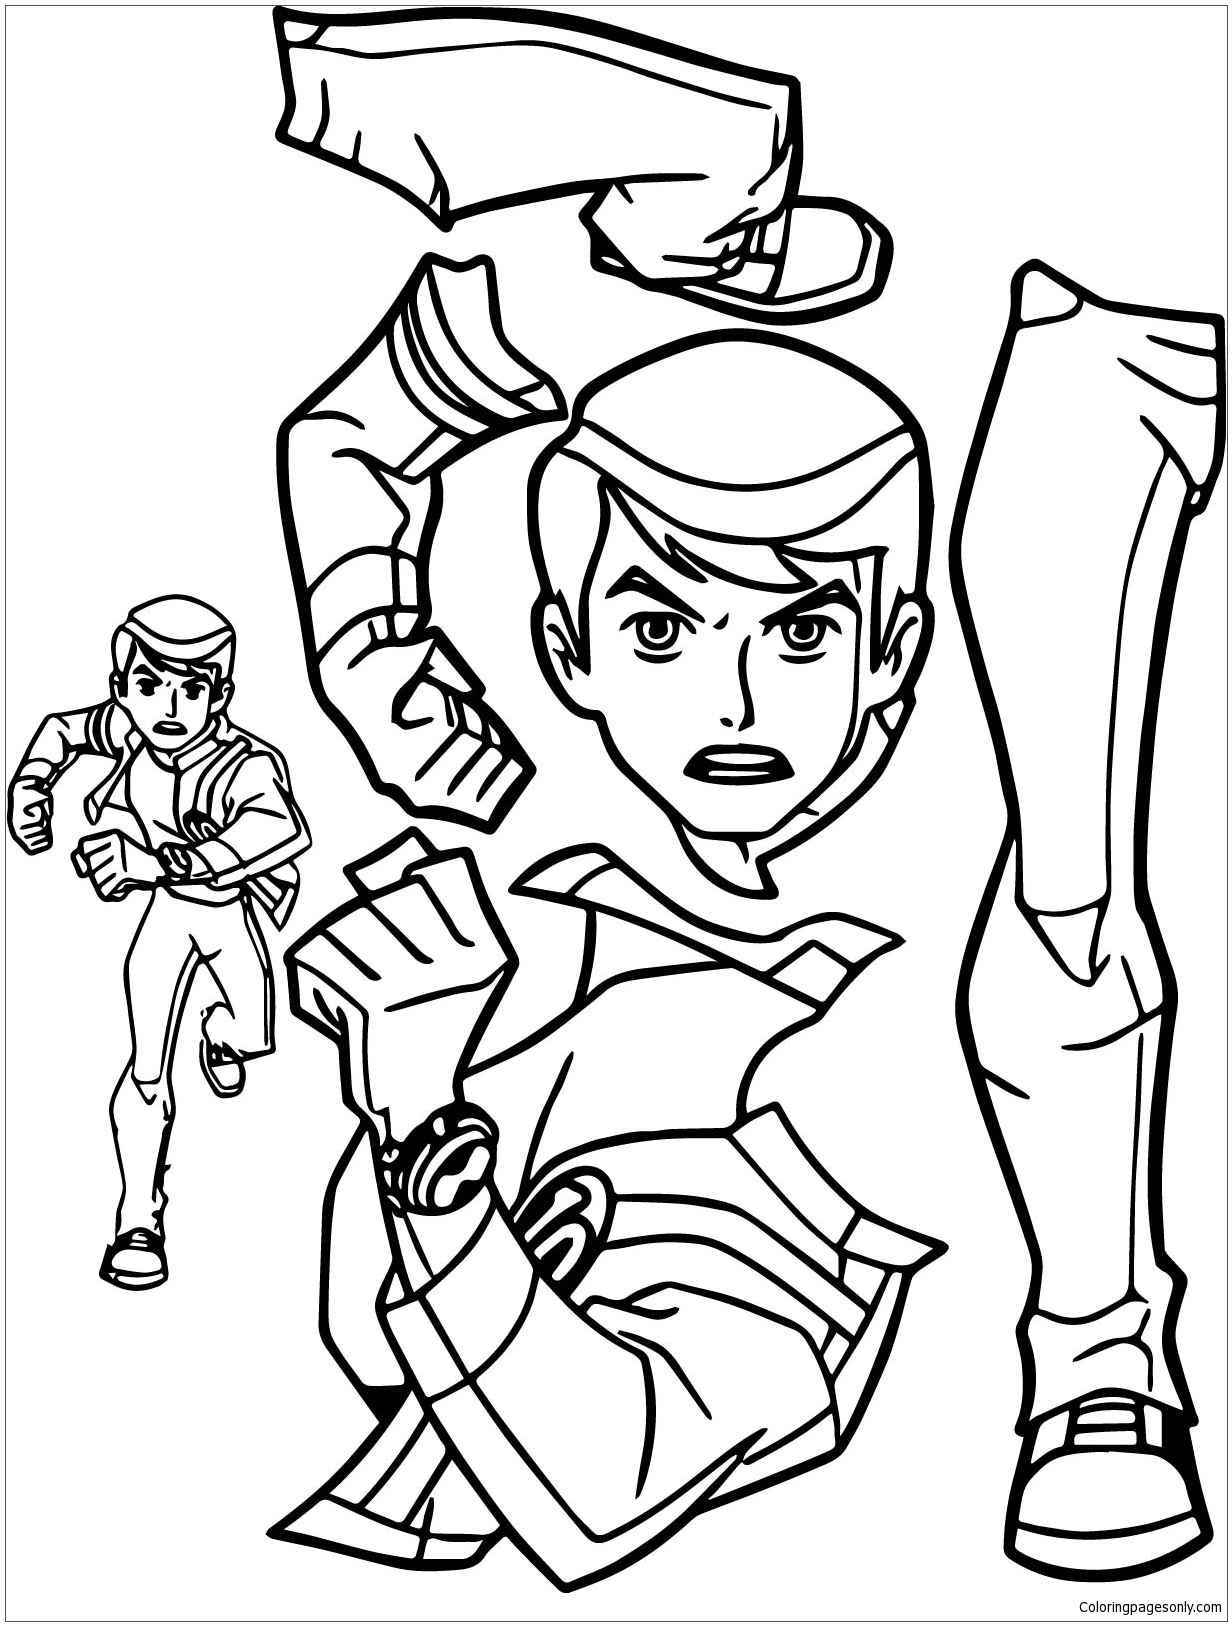 BenTen Alien Force Giant Part Coloring Page - Free Coloring ...